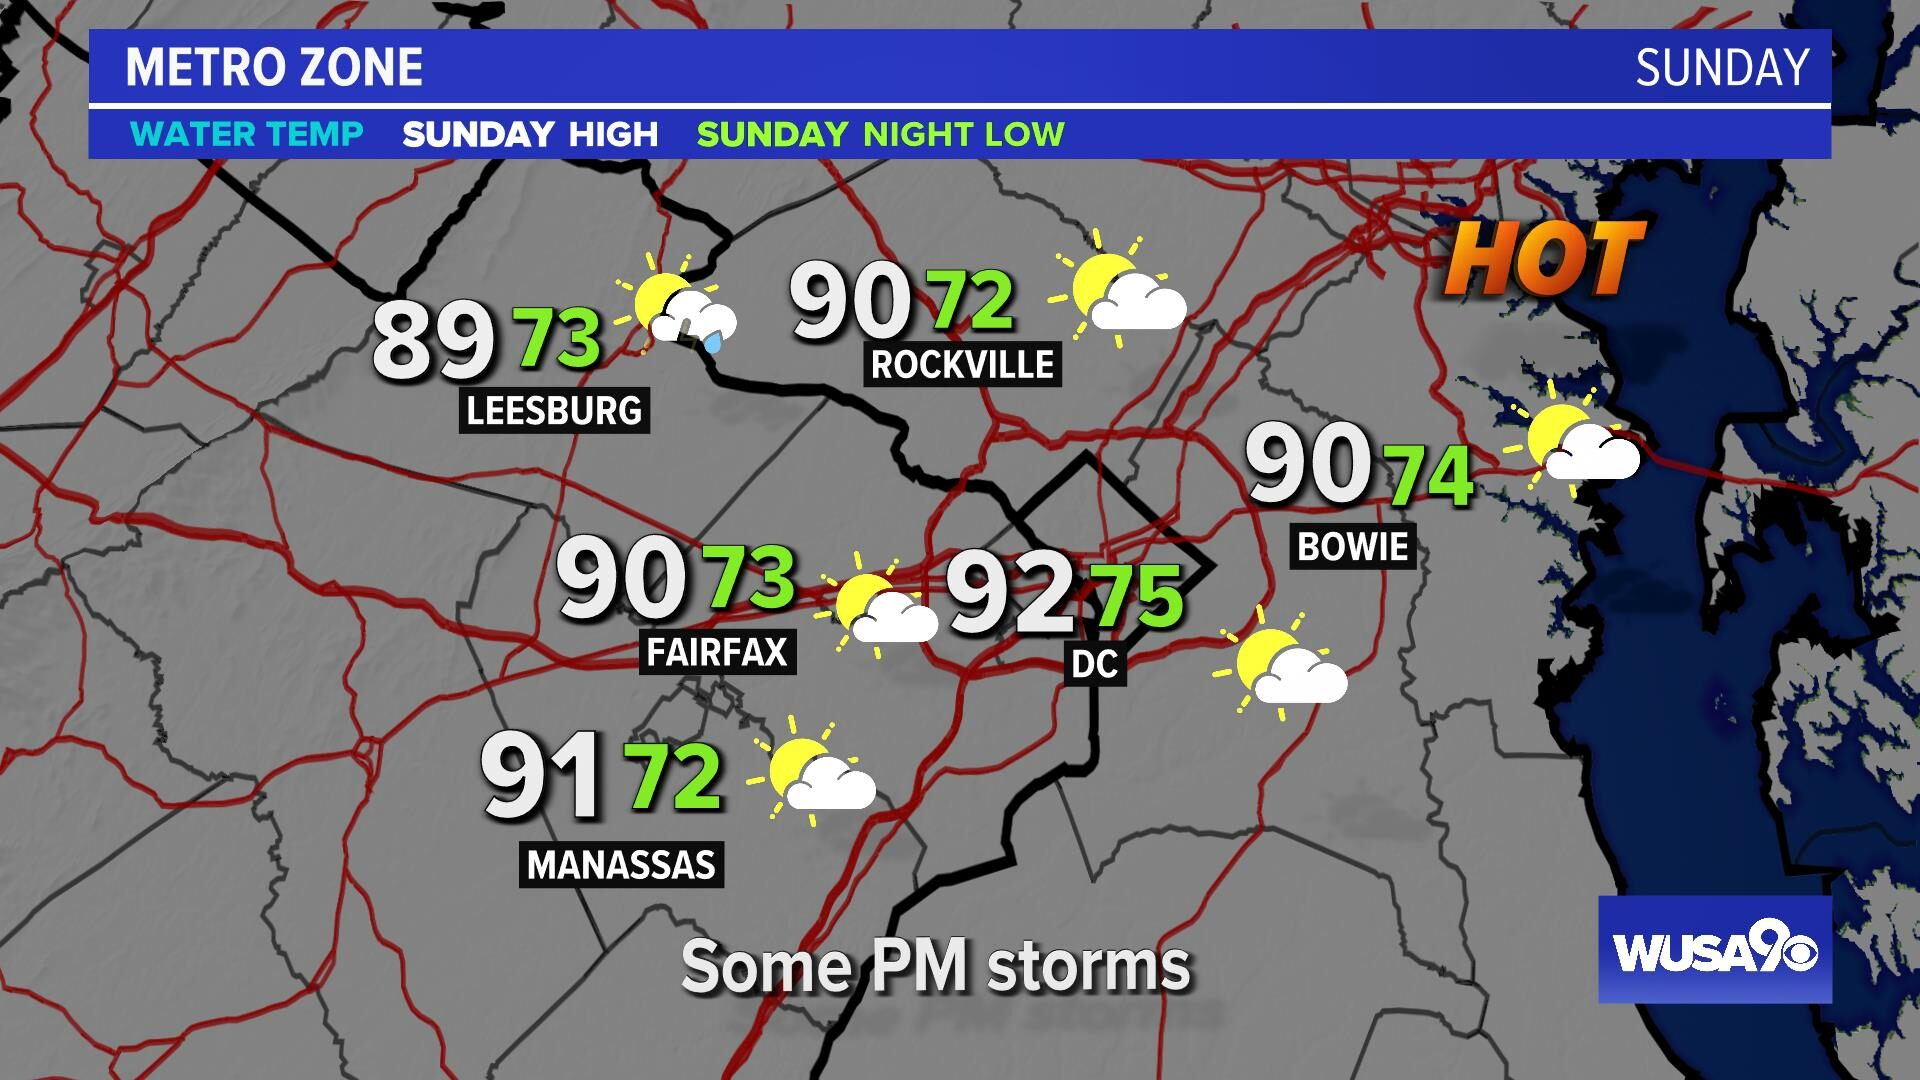 Weather Maps on WUSA9 in Washington, DC on